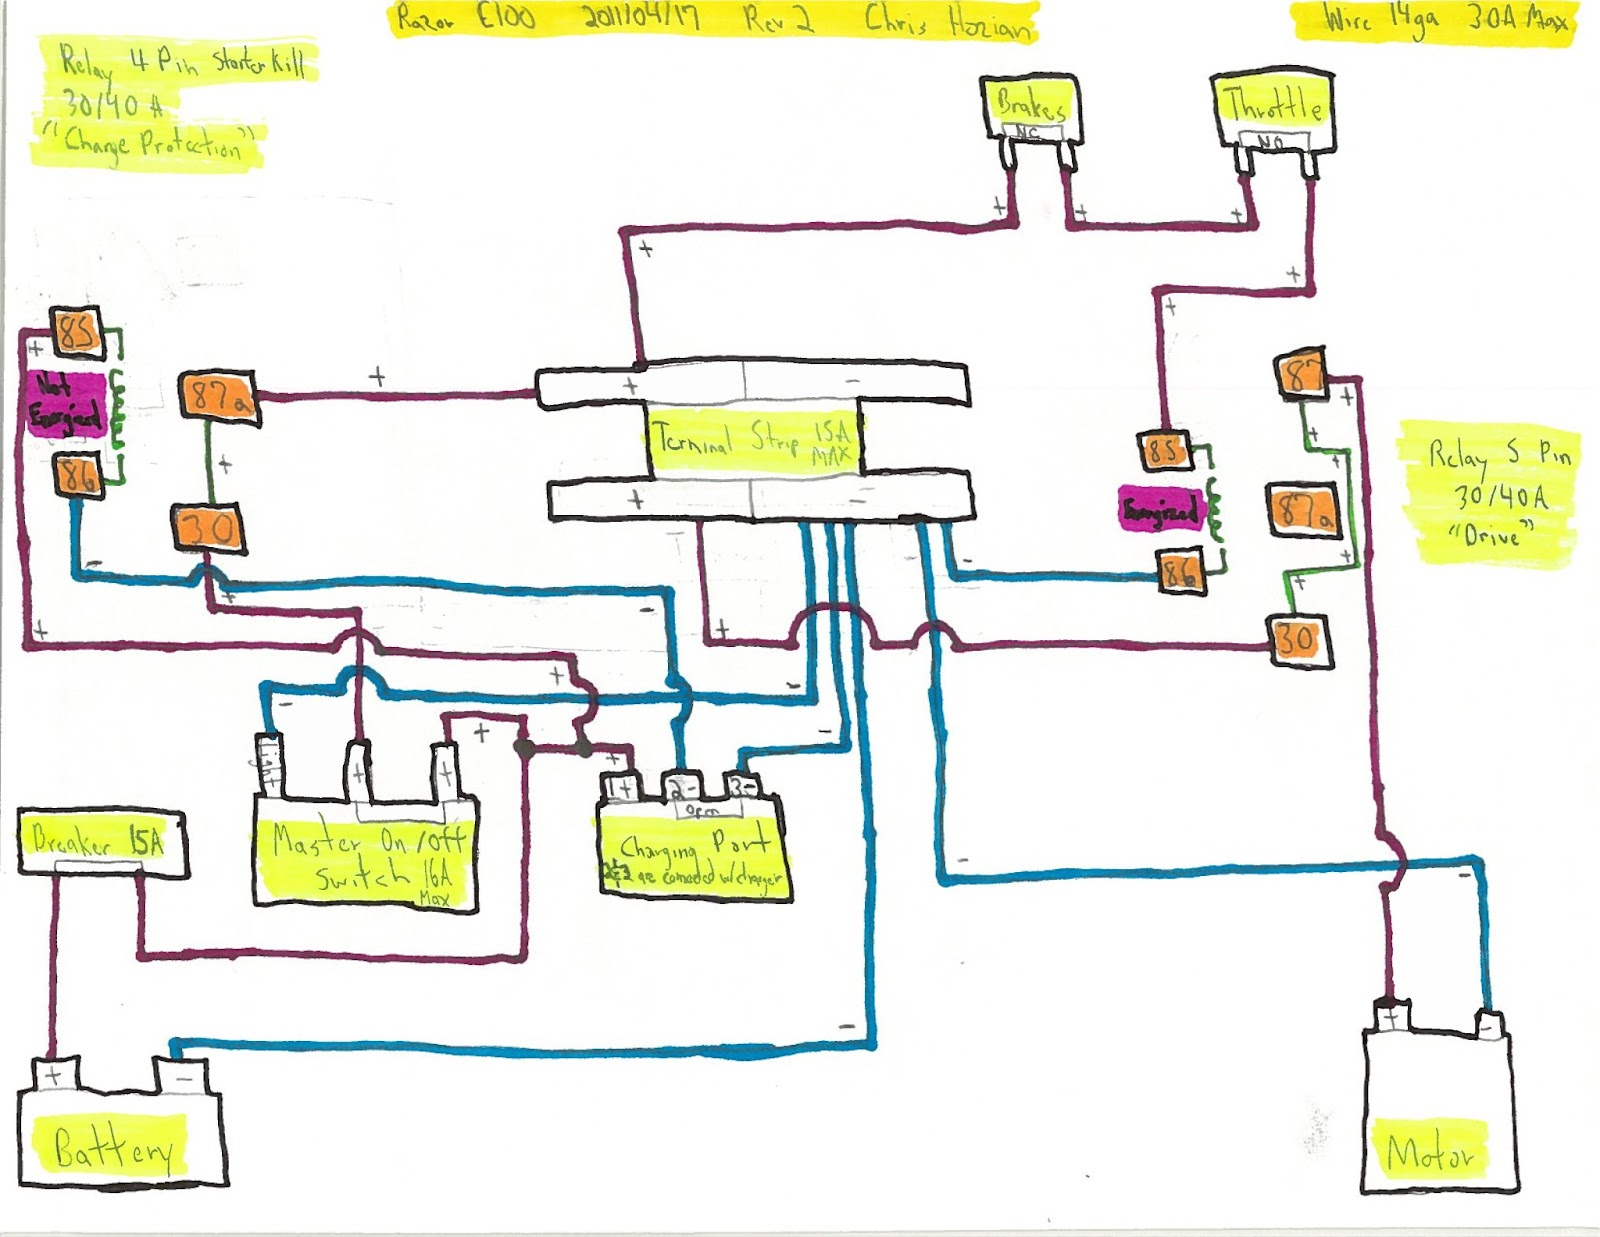 satellite electric scooter razor wiring diagram 12v trusted wiring electric  motor wiring diagram electric scooter wiring